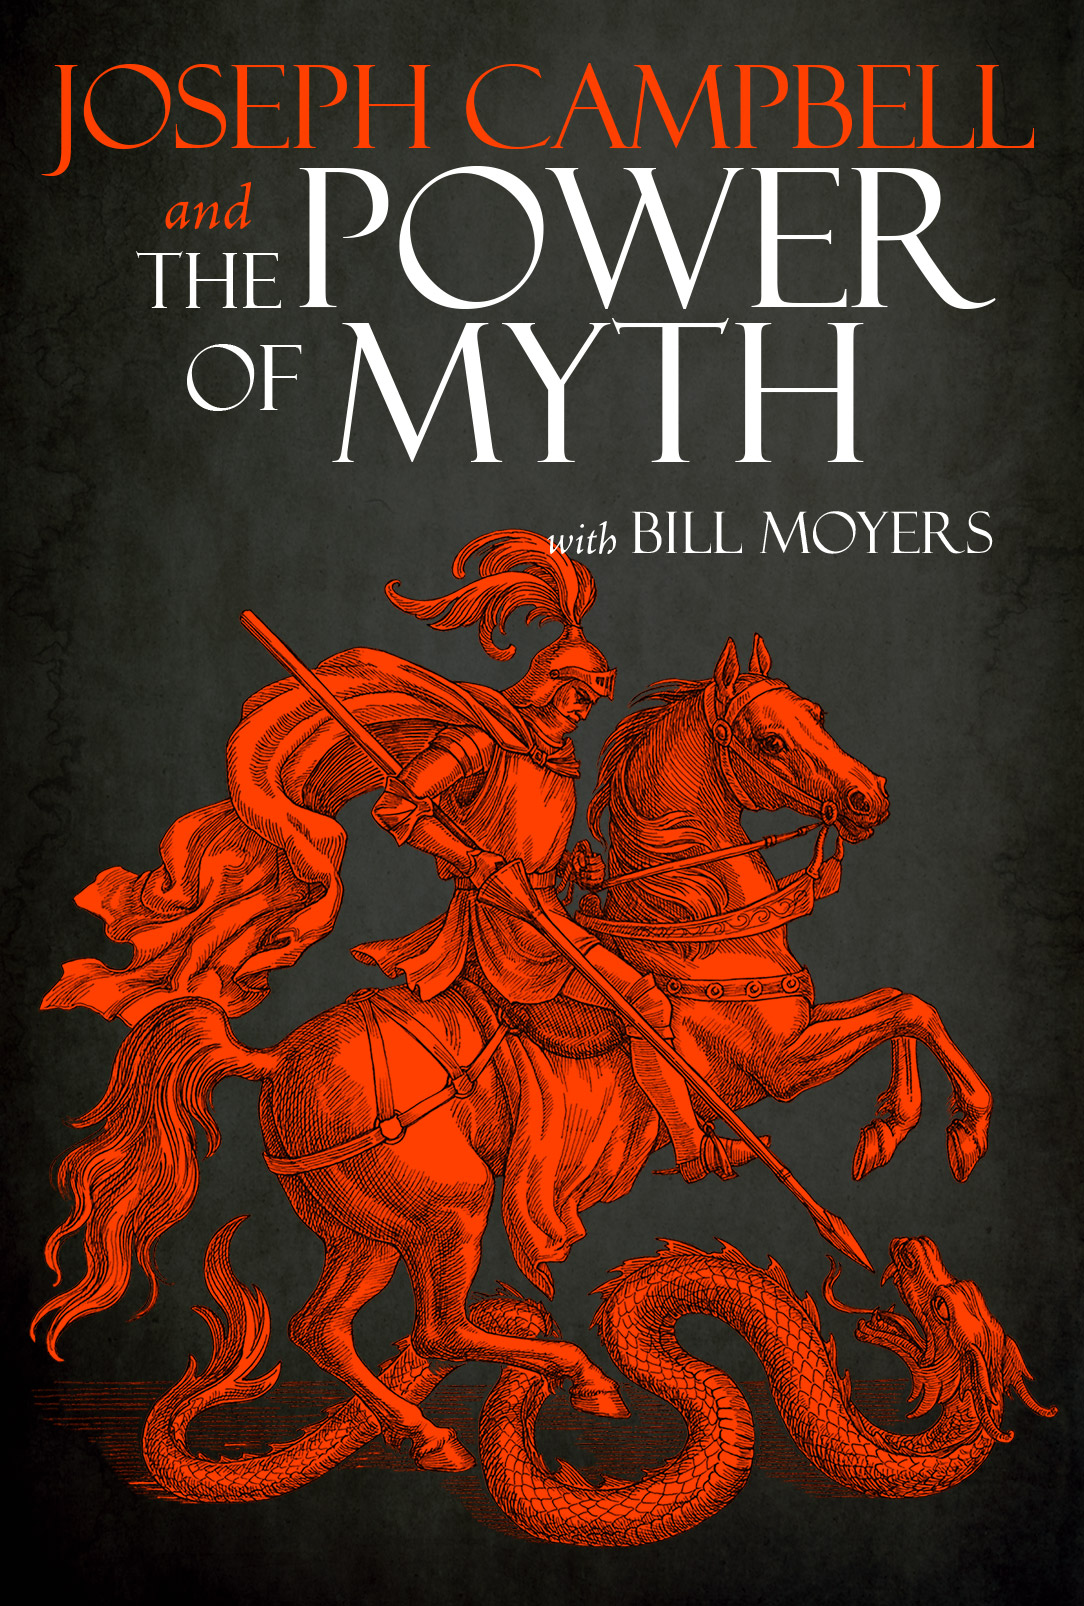 The Power of Myth - by Joseph CampbellAmong his many gifts, Joseph Campbell's most impressive was the unique ability to take a contemporary situation, such as the murder and funeral of President John F. Kennedy, and help us understand its impact in the context of ancient mythology. Herein lies the power of The Power of Myth, showing how humans are apt to create and live out the themes of mythology.Based on a six-part PBS television series hosted by Bill Moyers, this classic is especially compelling because of its engaging question-and-answer format, creating an easy, conversational approach to complicated and esoteric topics. For example, when discussing the mythology of heroes, Campbell and Moyers smoothly segue from the Sumerian sky goddess Inanna to Star Wars' mercenary-turned-hero, Han Solo. Most impressive is Campbell's encyclopedic knowledge of myths, demonstrated in his ability to recall the details and archetypes of almost any story, from any point and history, and translate it into a lesson for spiritual living in the here and now.